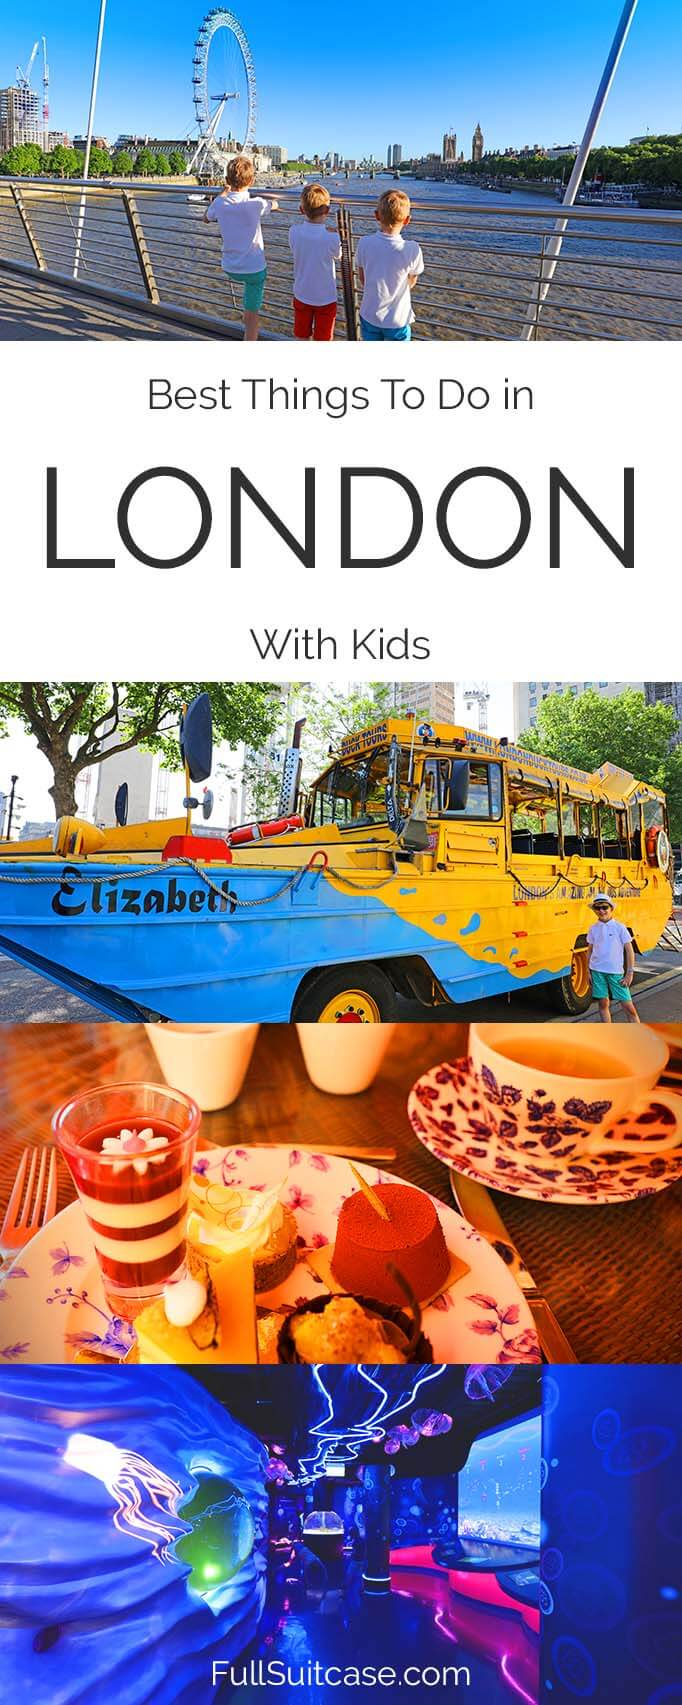 London with kids - what to do and see if visiting London with the family for the first time